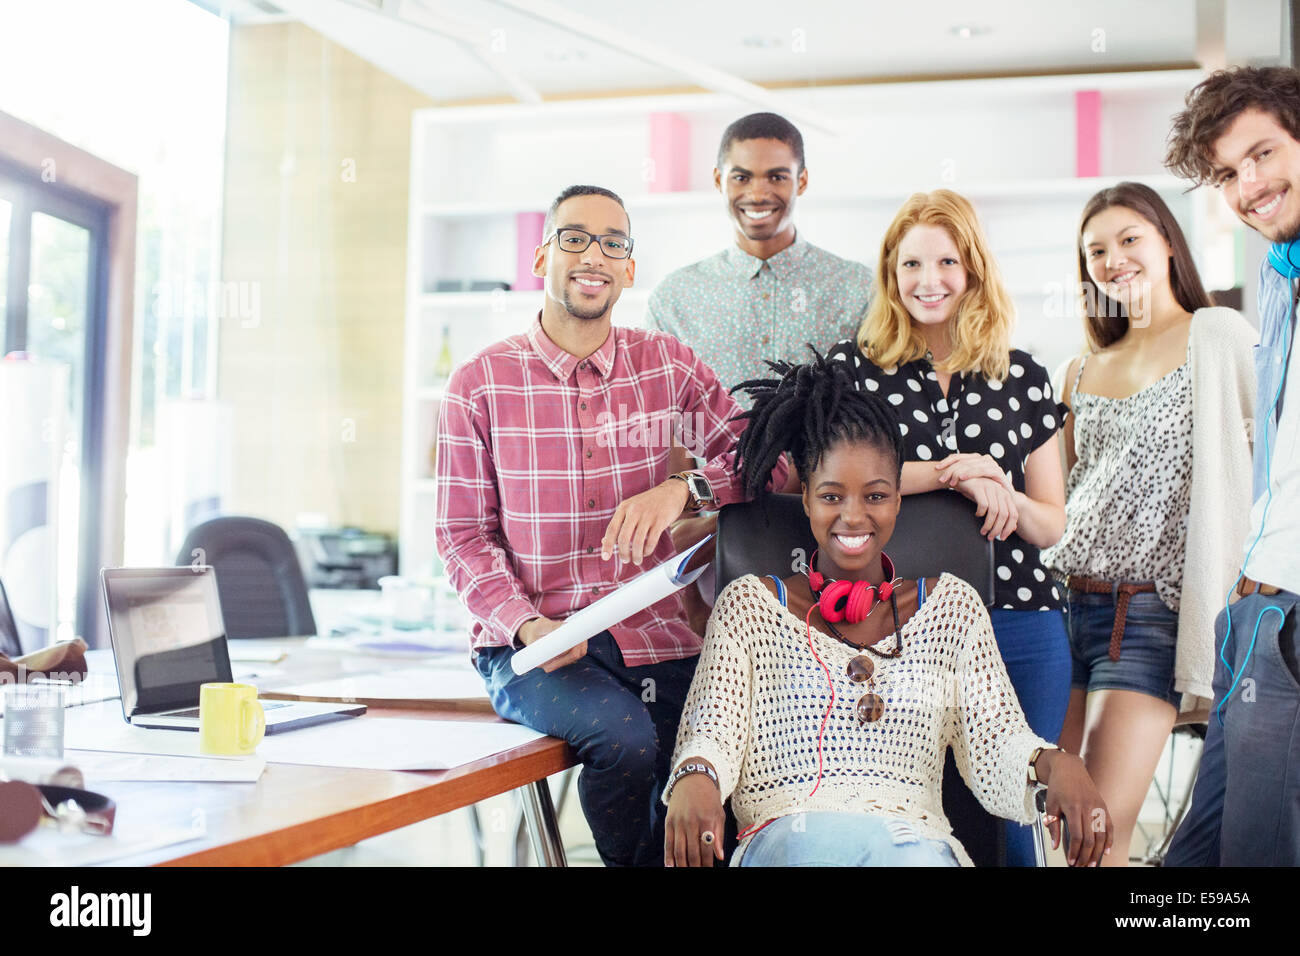 People smiling together in office - Stock Image